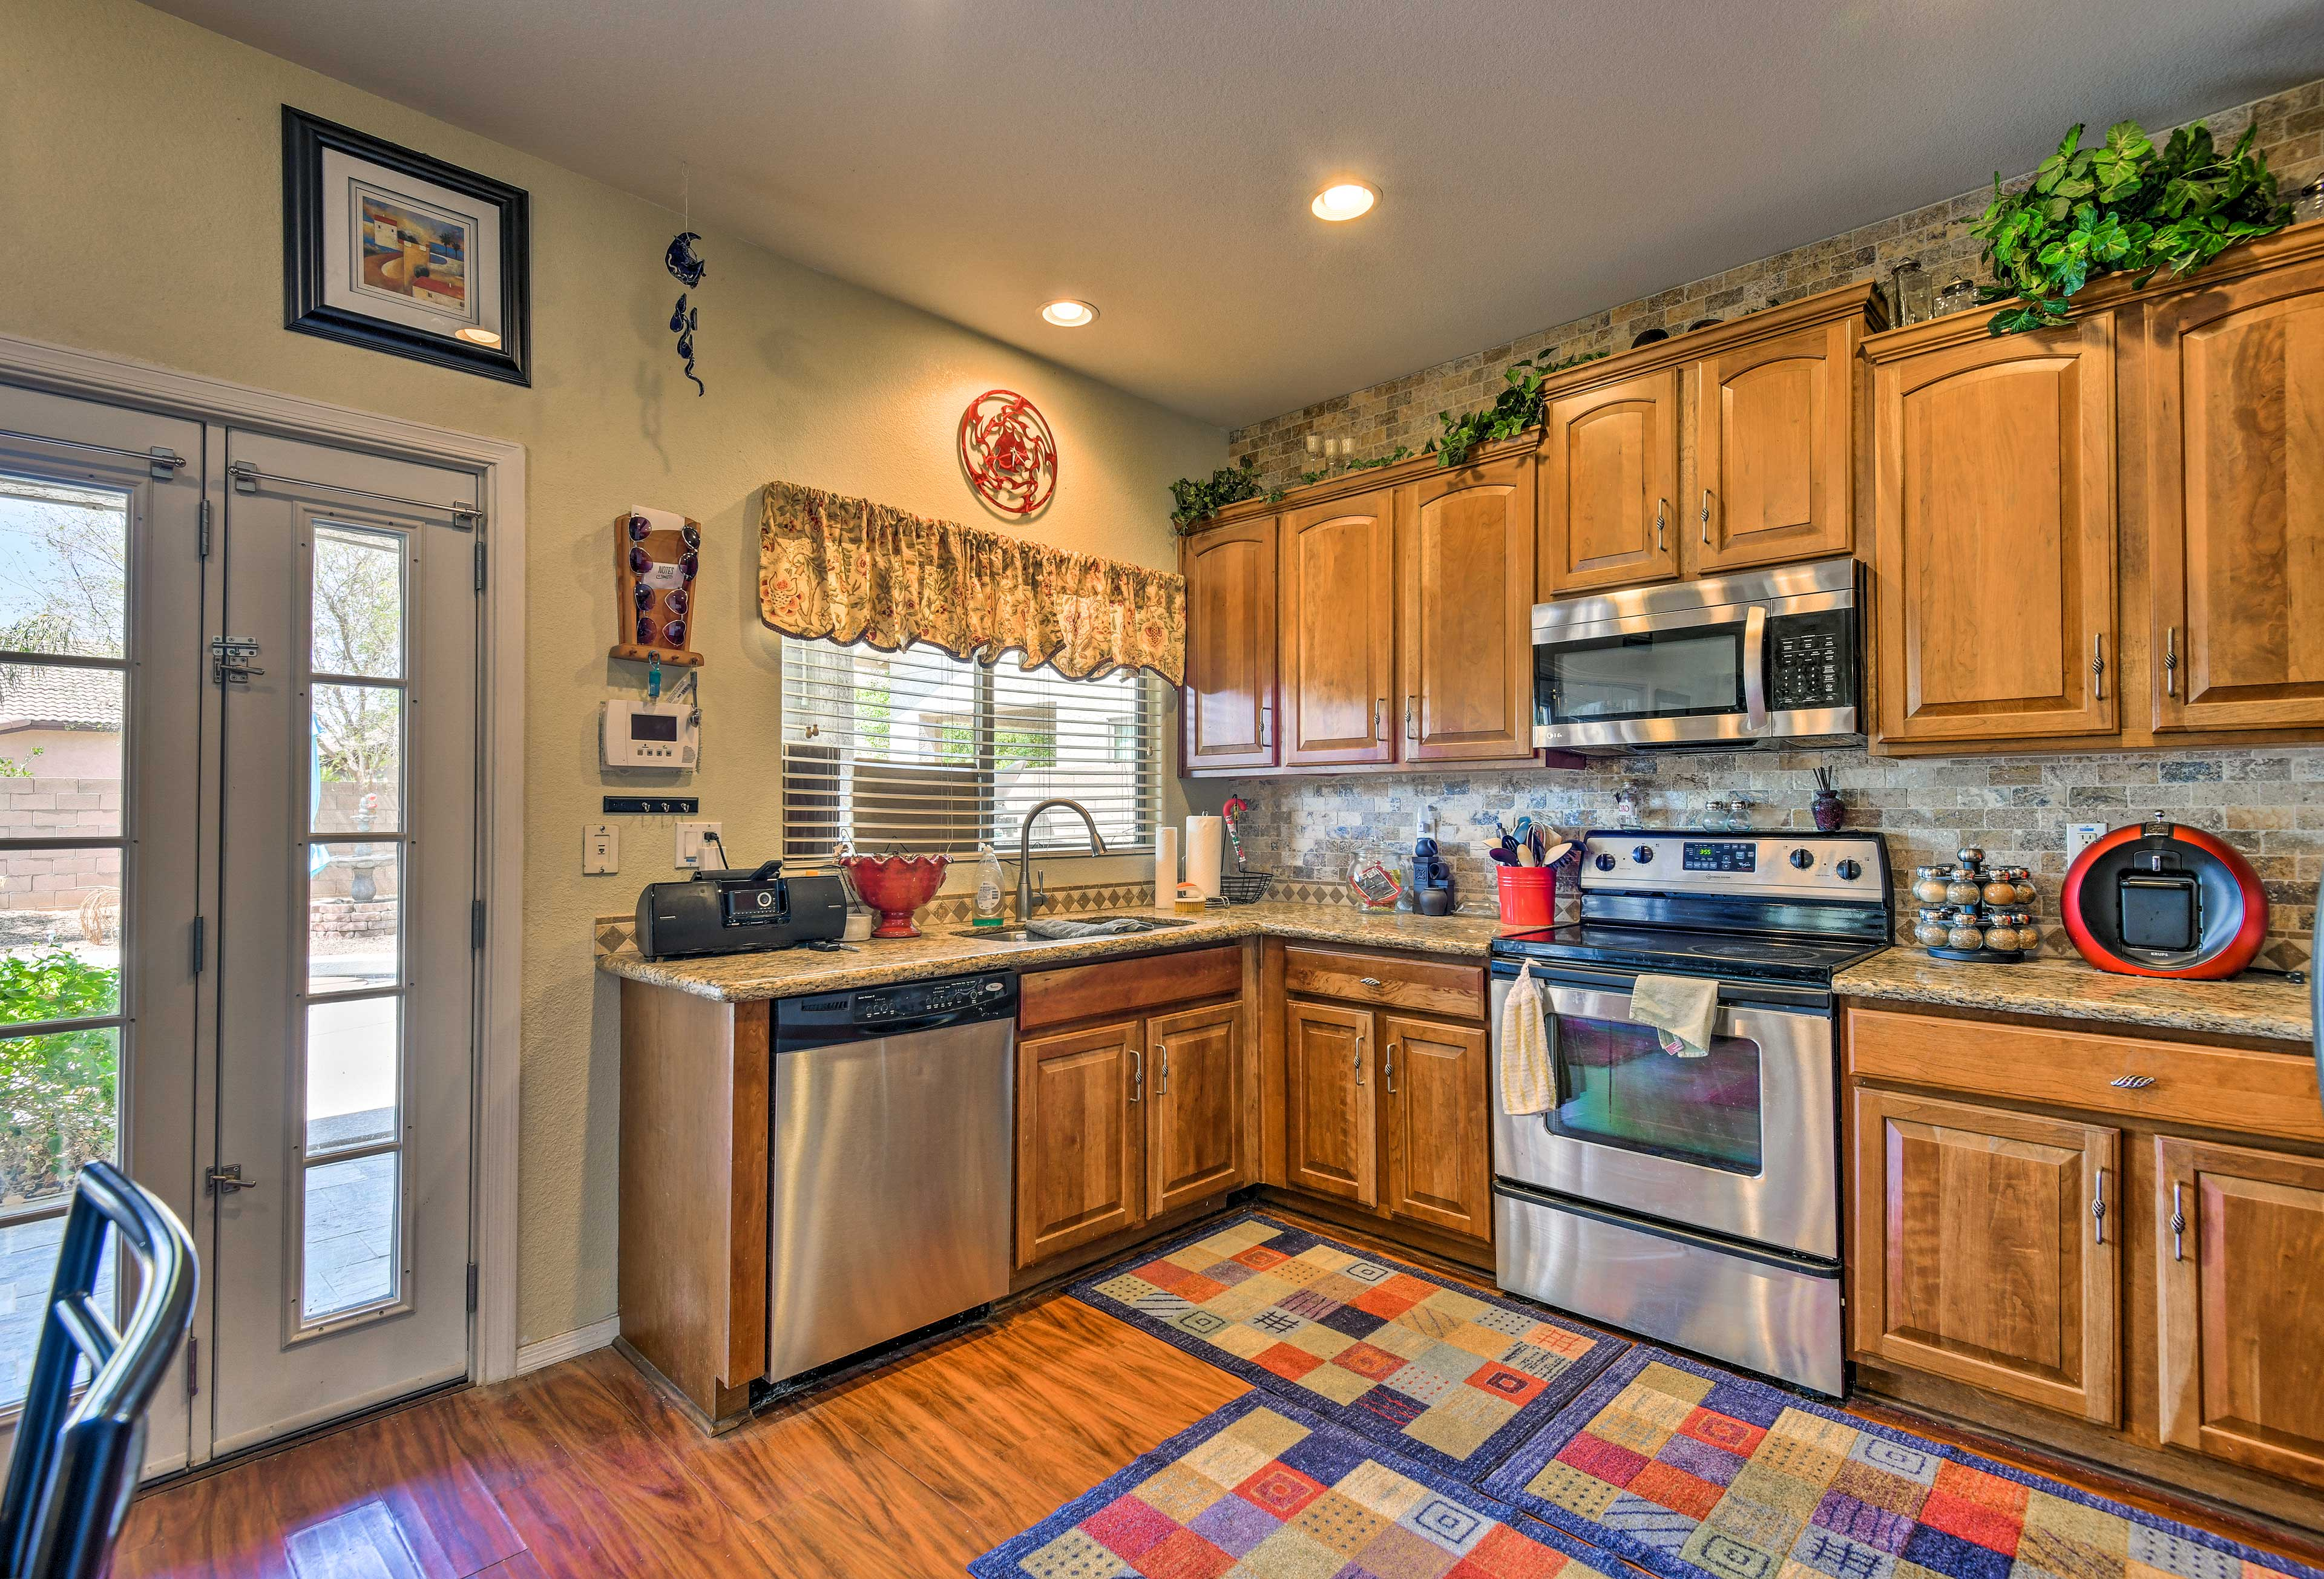 The stylish kitchen offers stainless steel appliances and granite countertops!